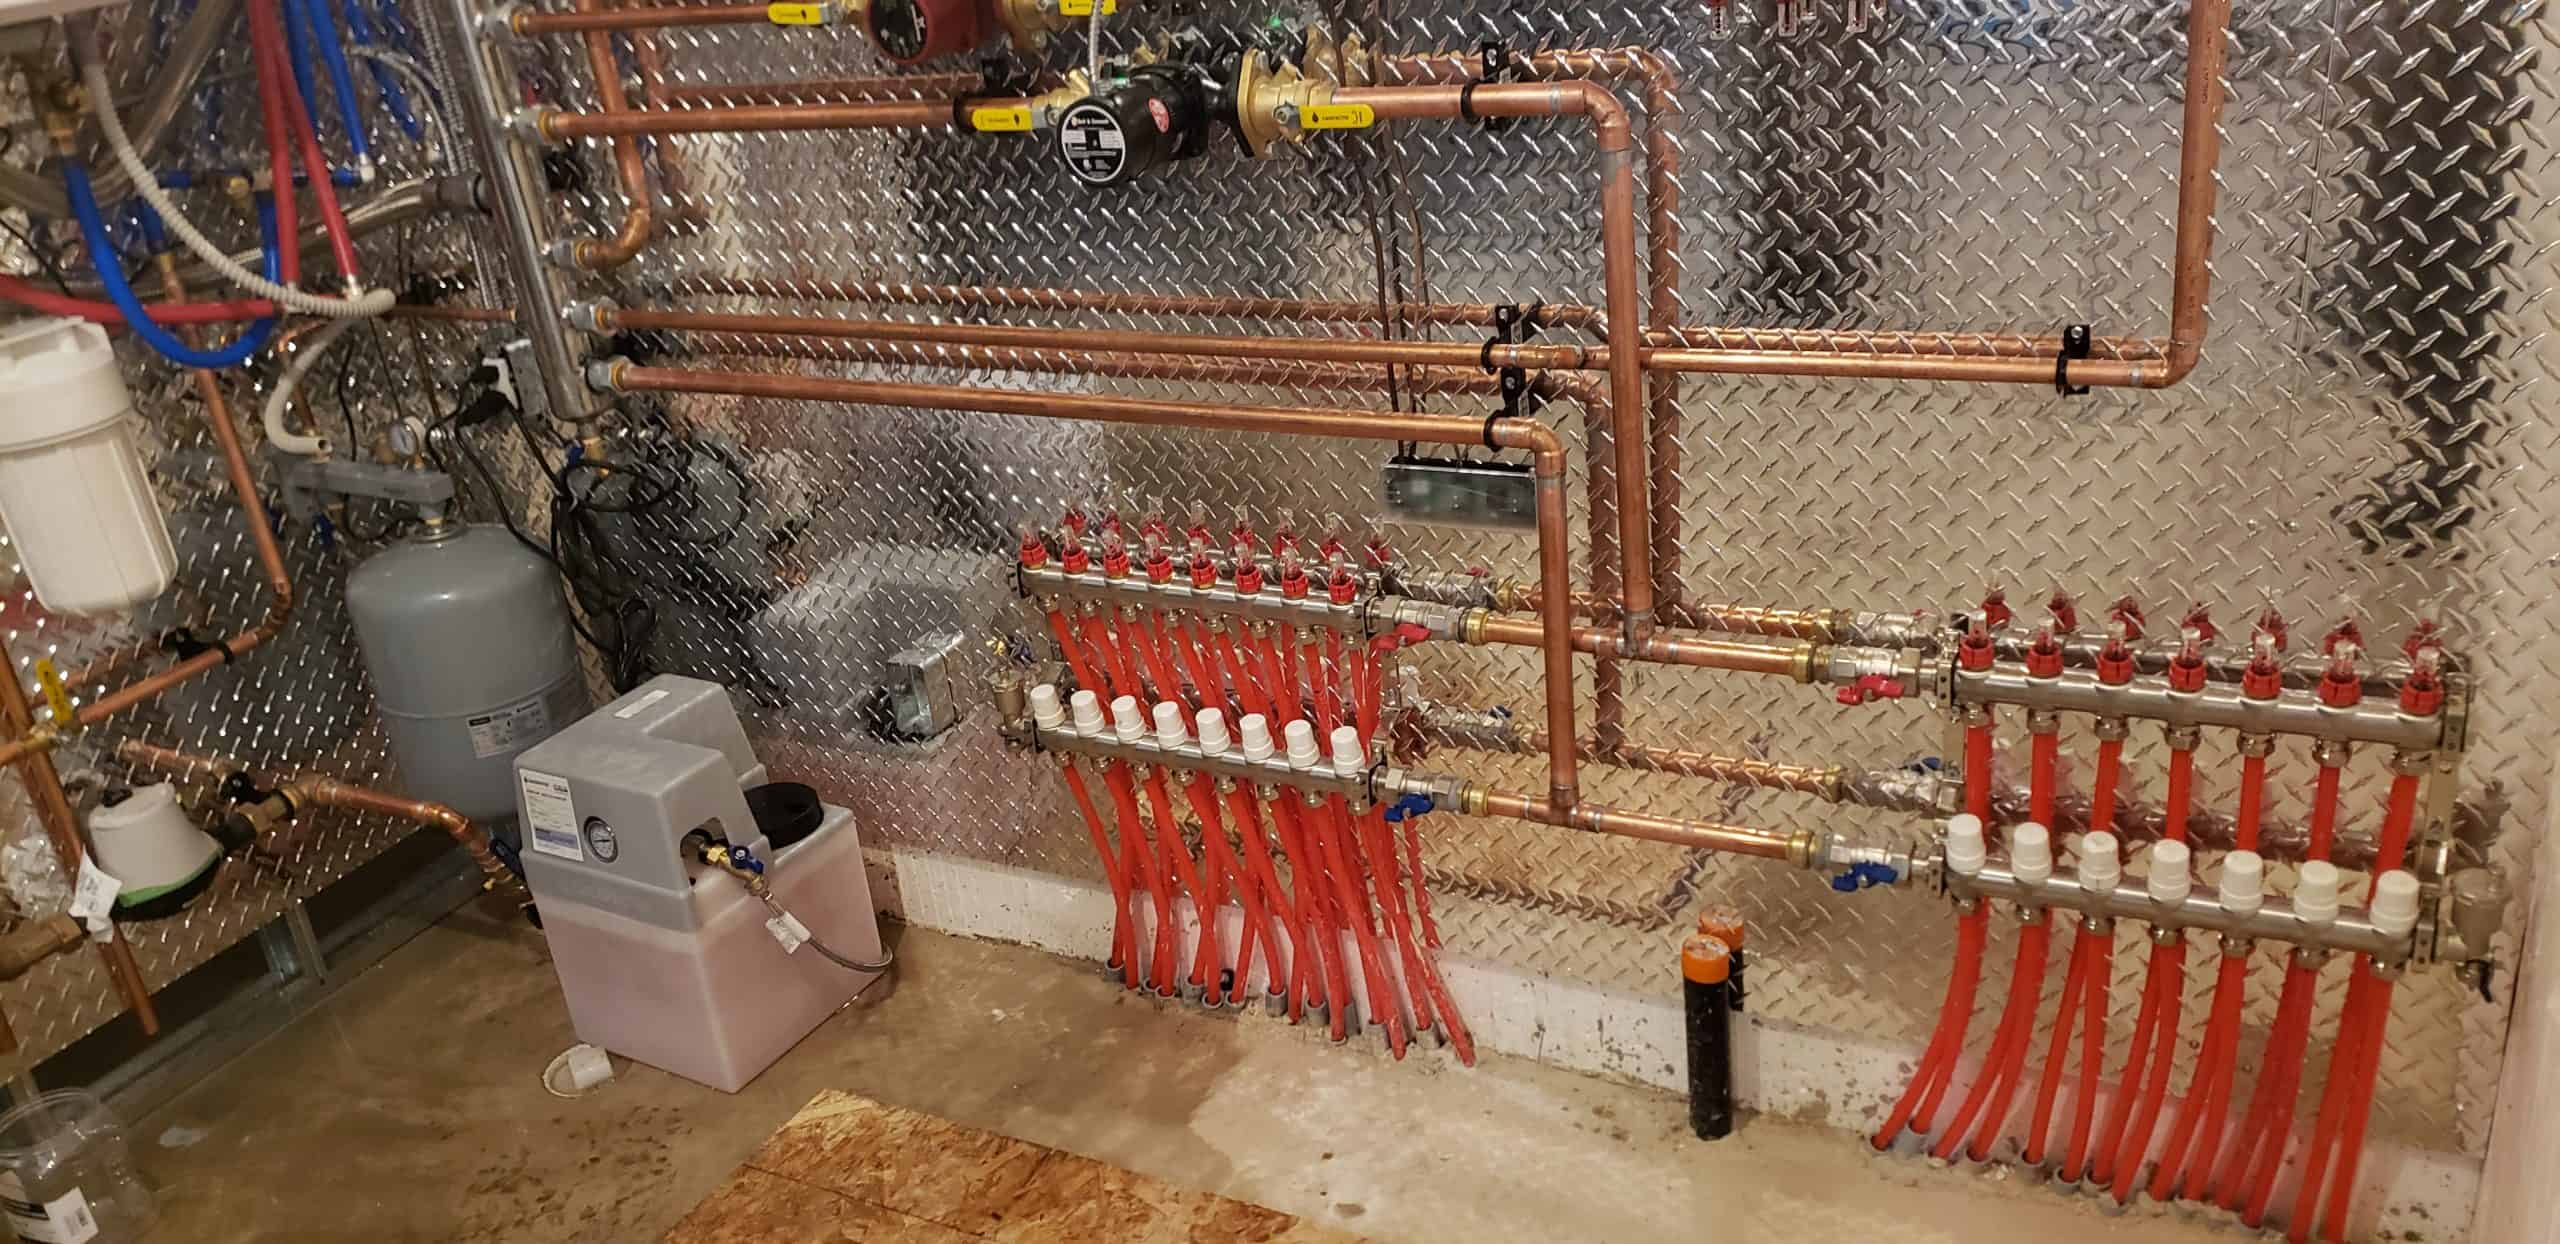 Manifolds and pumps are connected 2